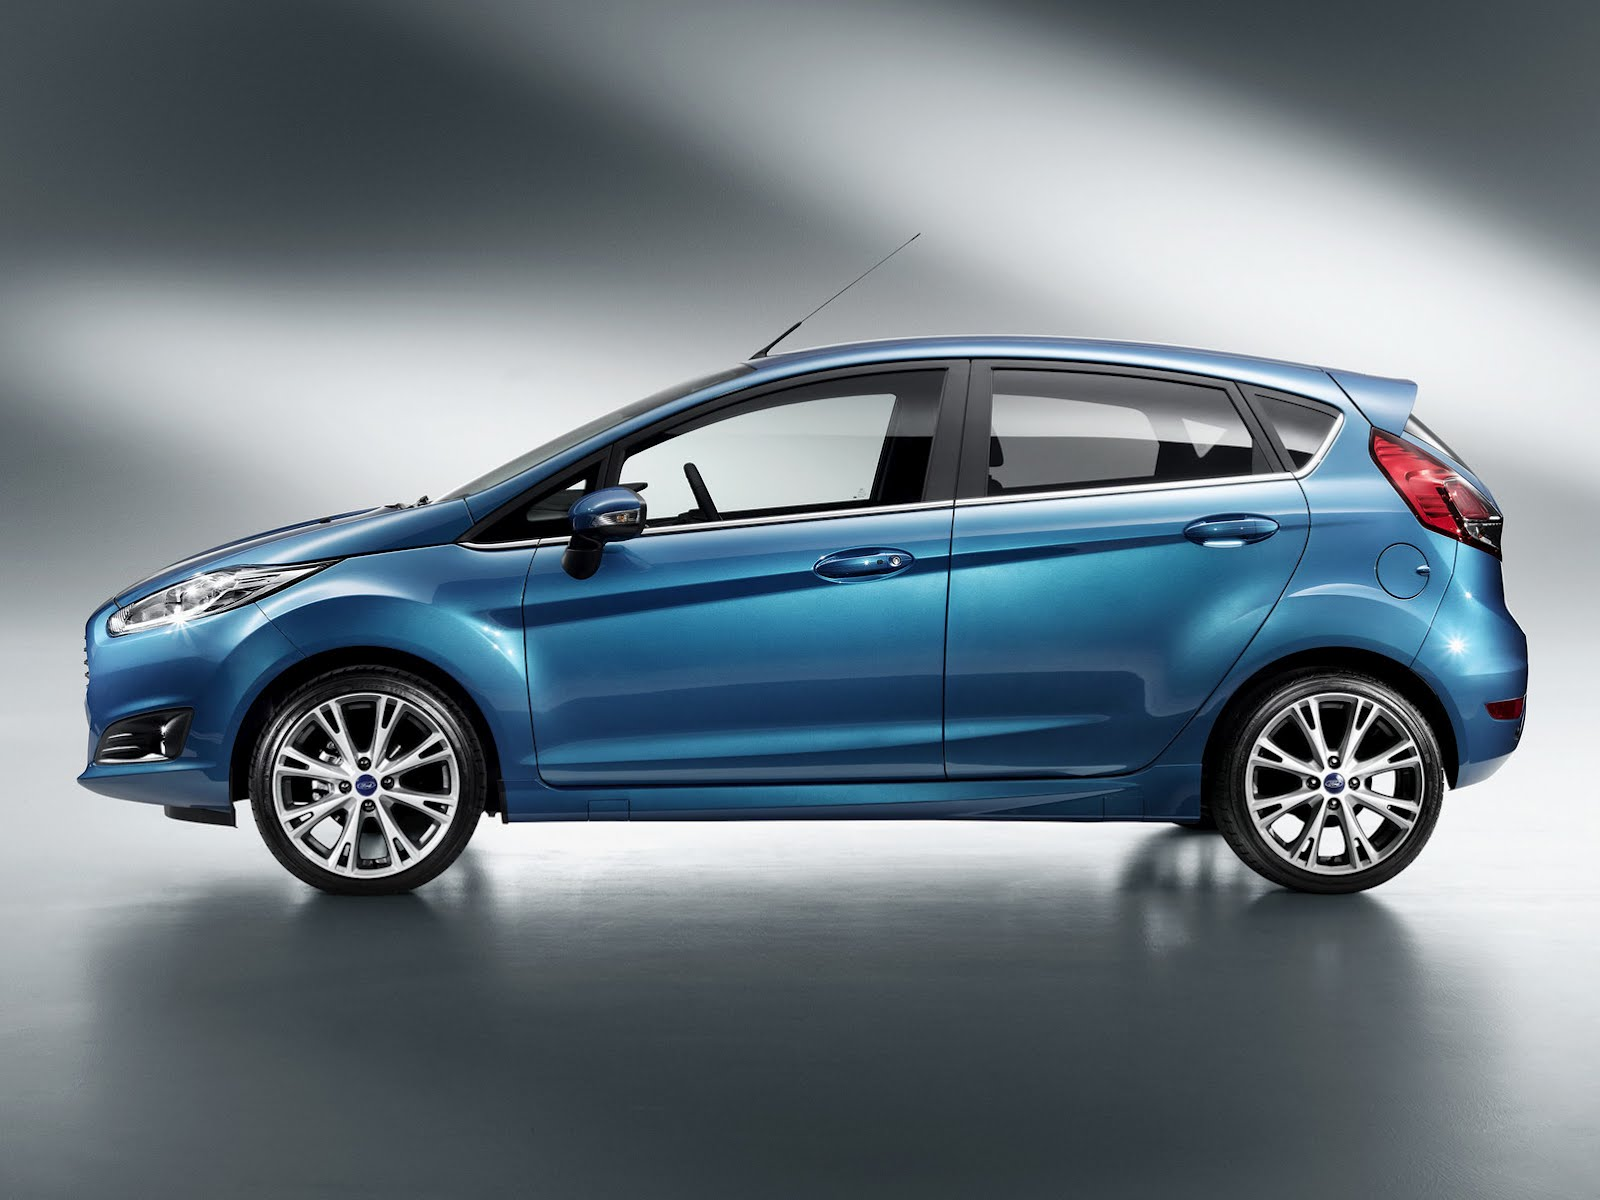 Ford Fiesta 2014 photo - 7